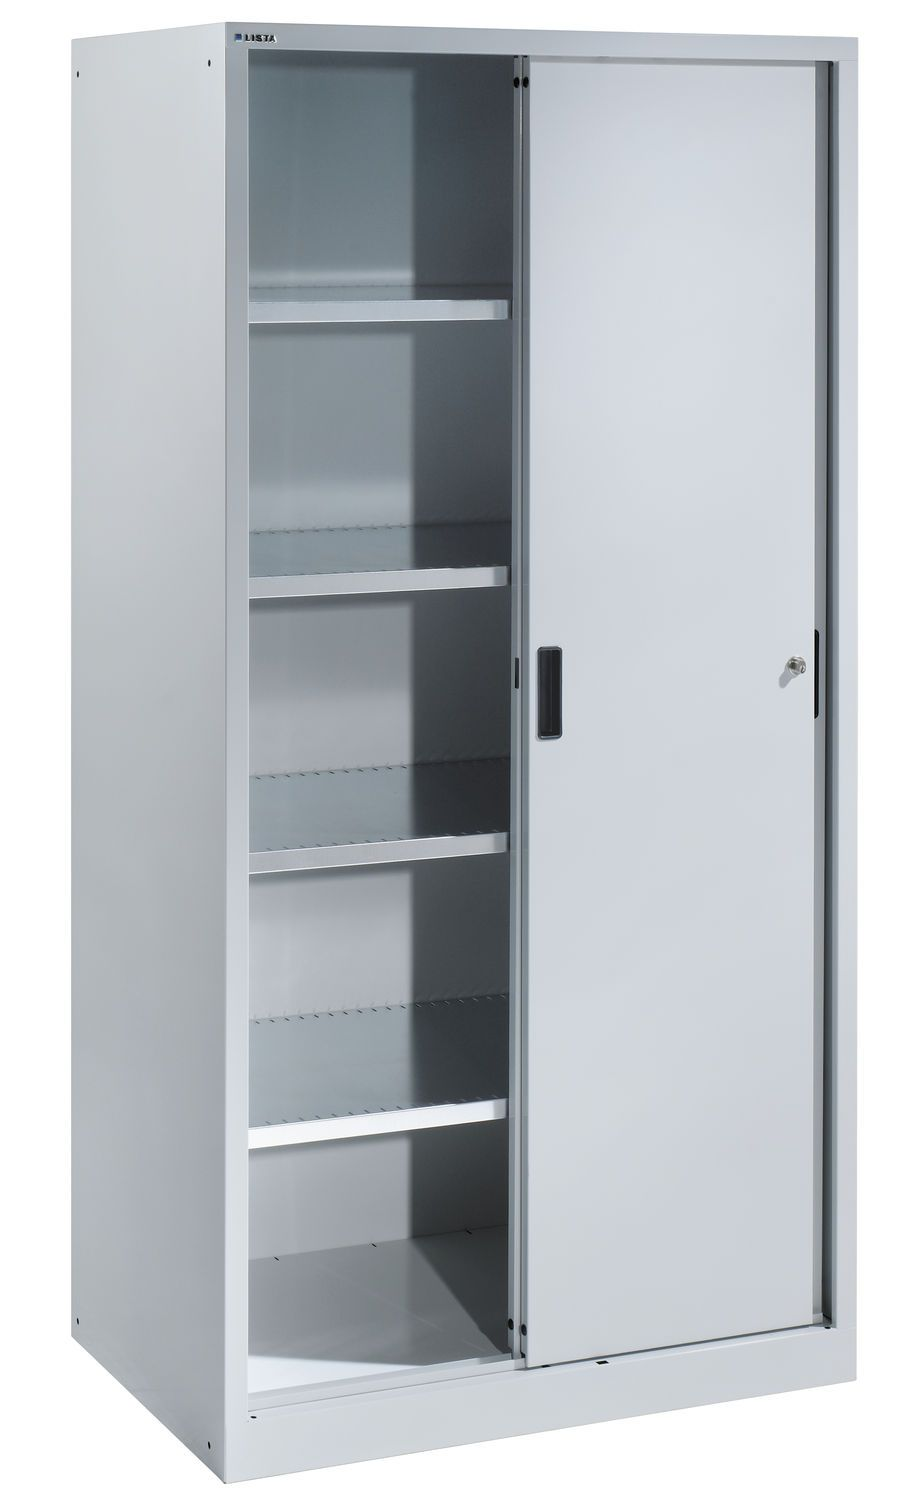 Office Metal Cabinets Awe Inspiring Storage Cabinets With Doors Also Adjustable Metal